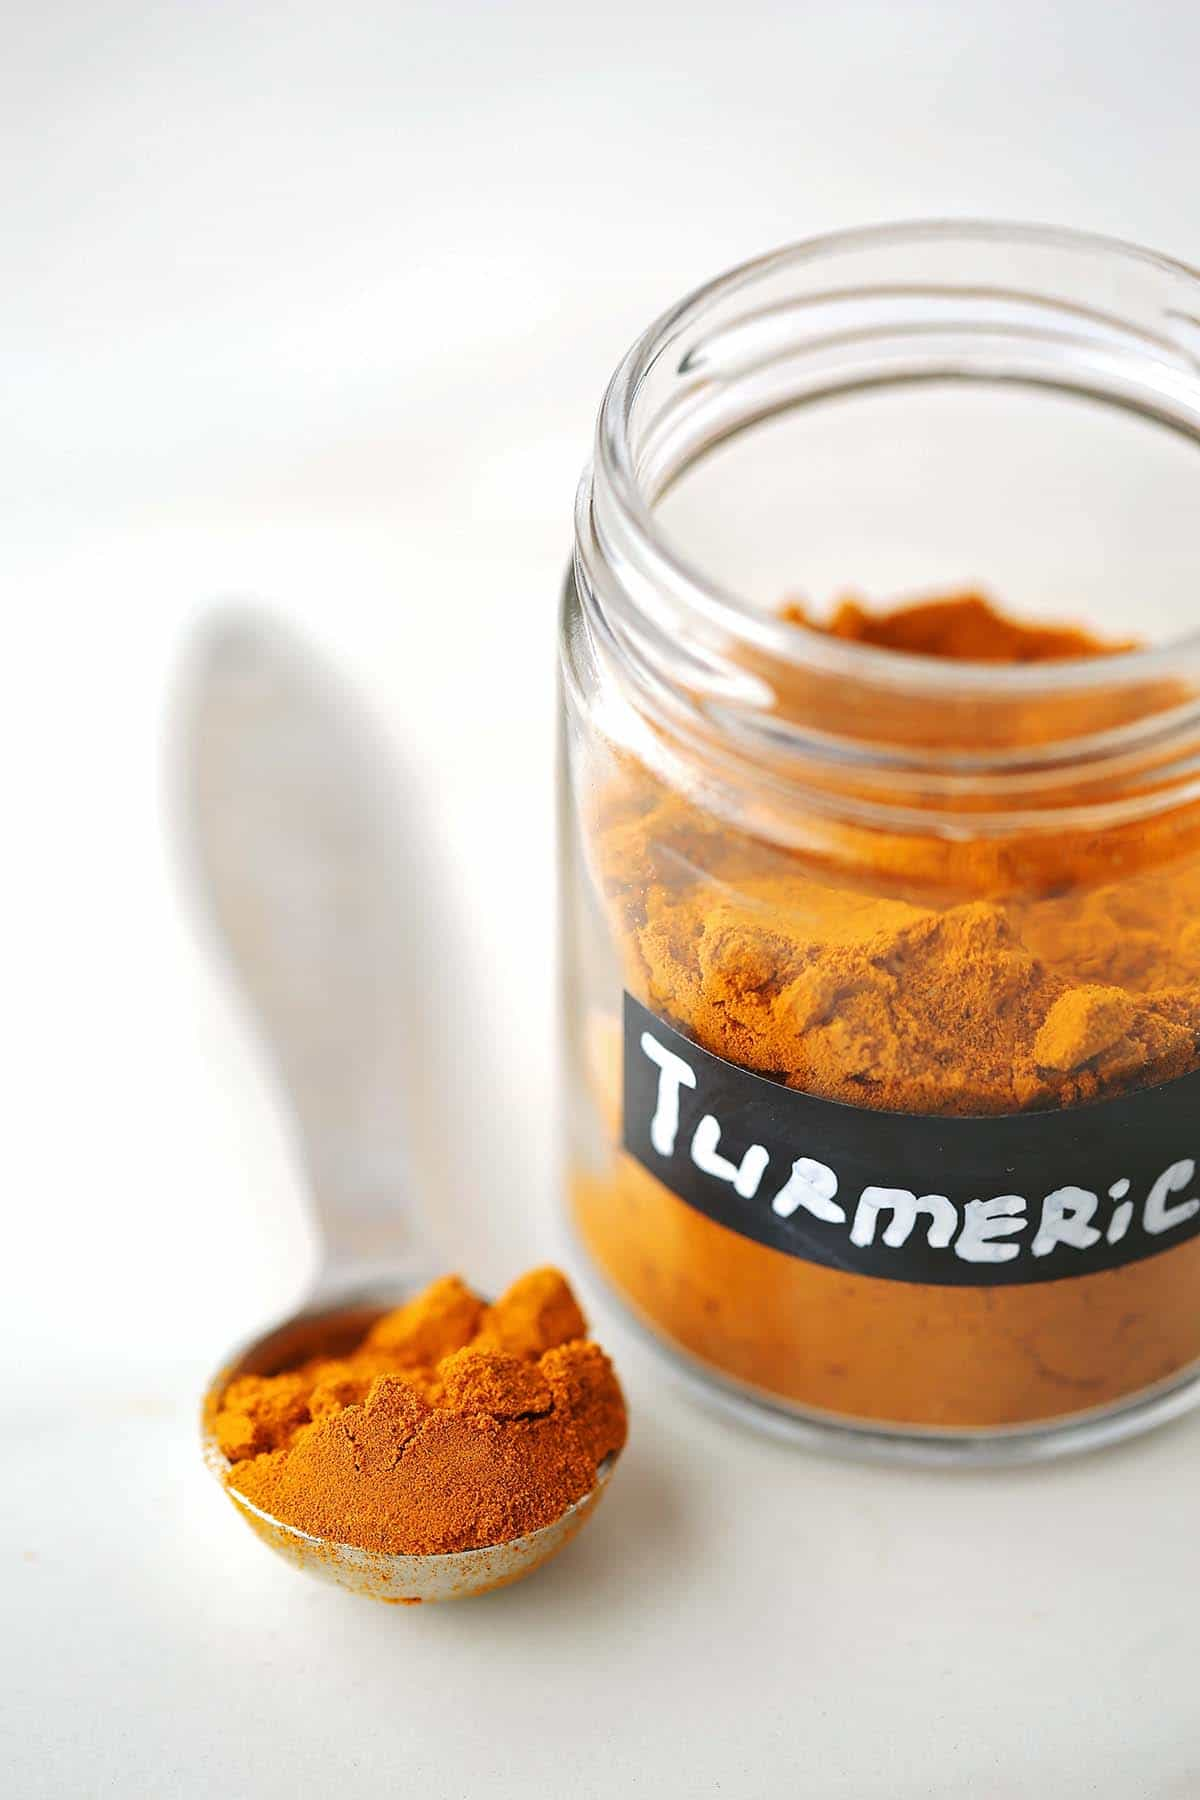 measuring spoon filled with bright orange spice and glass jar filled with spice and labeled turmeric